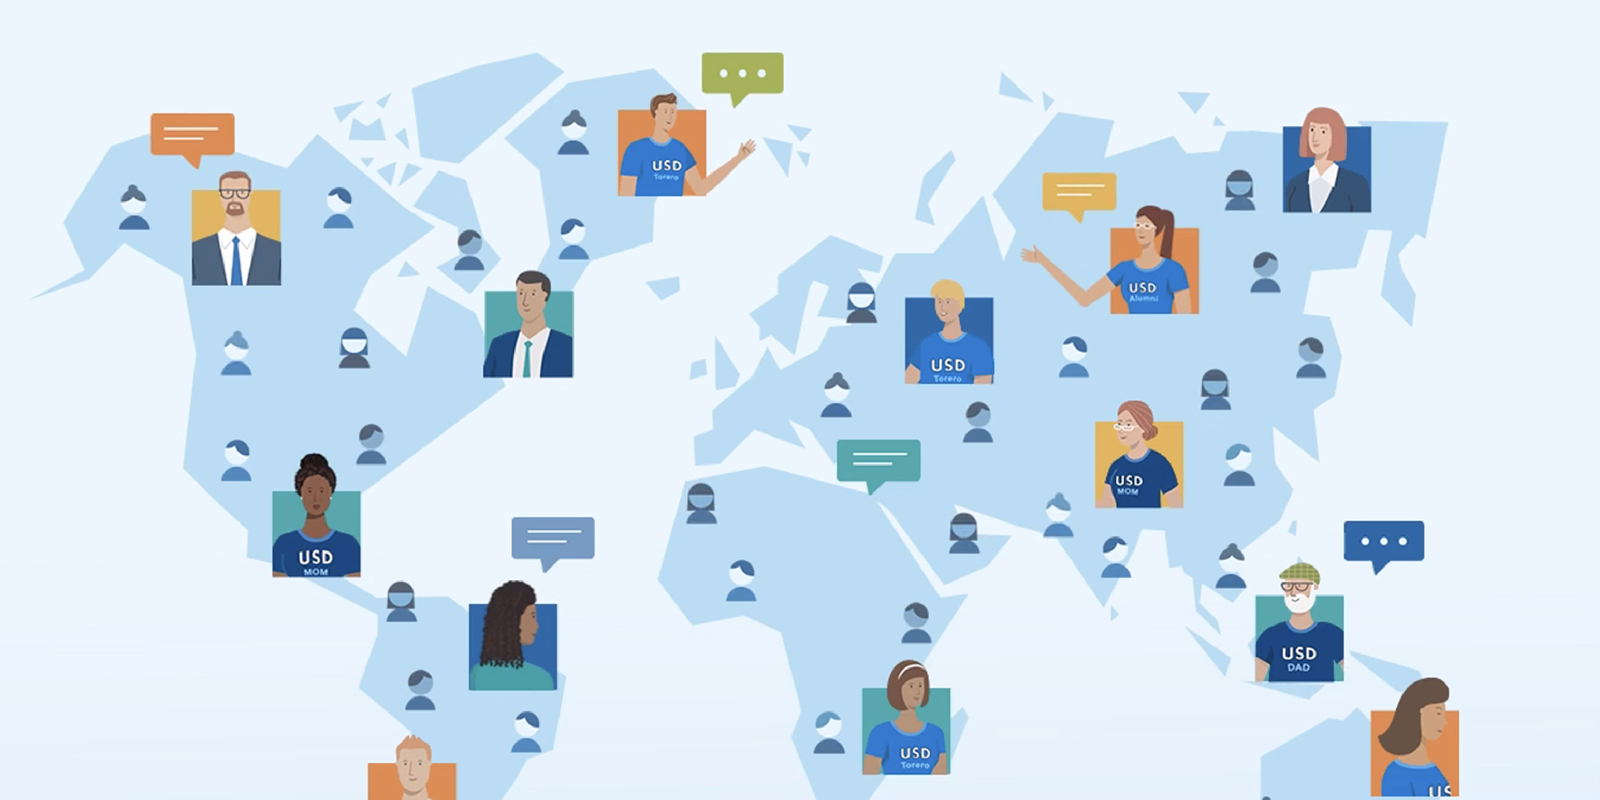 Graphic showing icons of people across the globe being connected